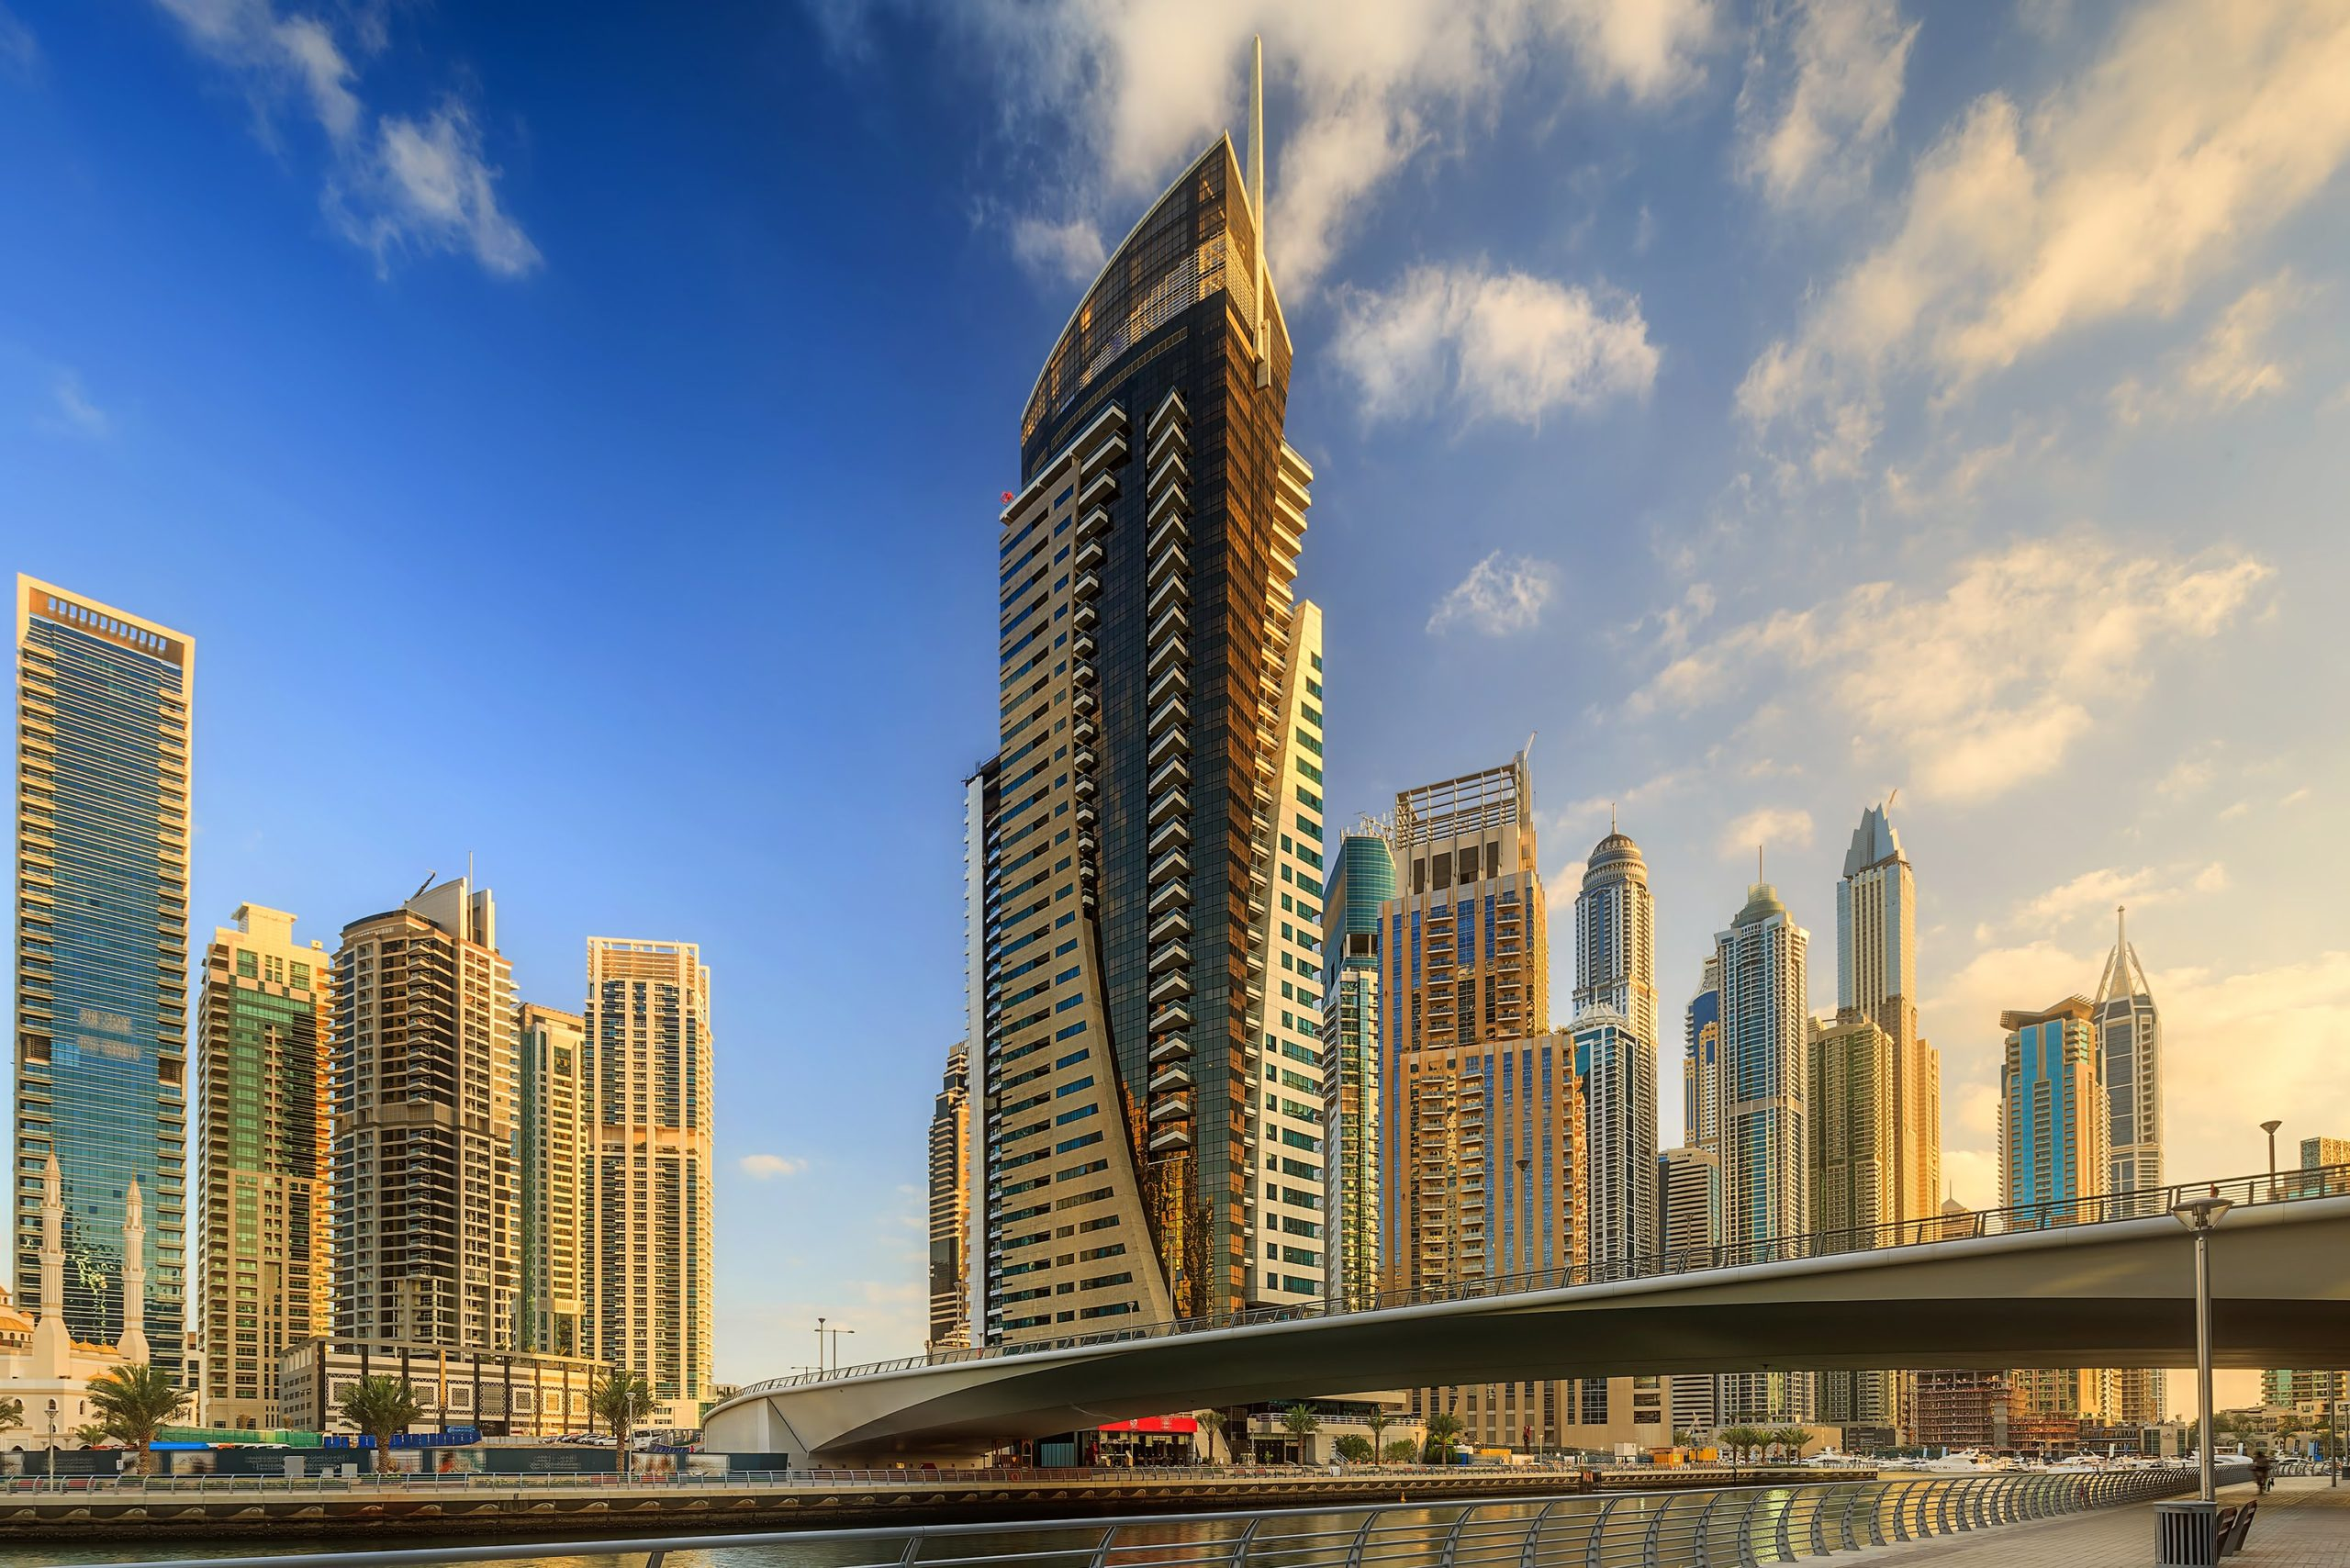 Dusit International offers free Dubai hotel rooms to victims of COVID-19 crisis